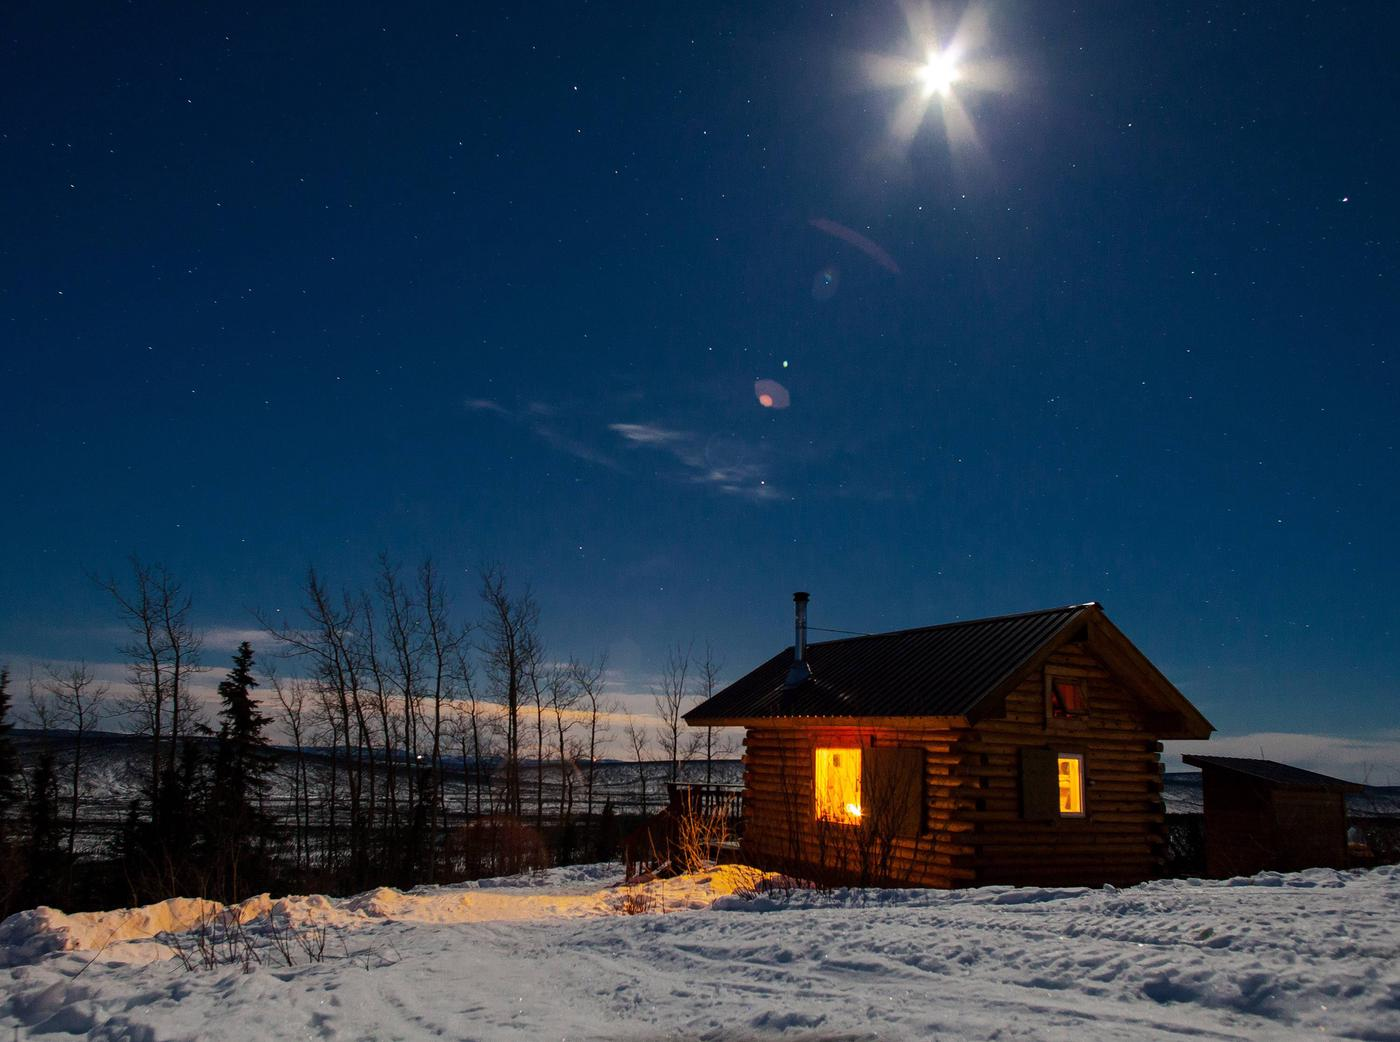 Log cabin at night under moonlightEleazar's Cabin under moonlight